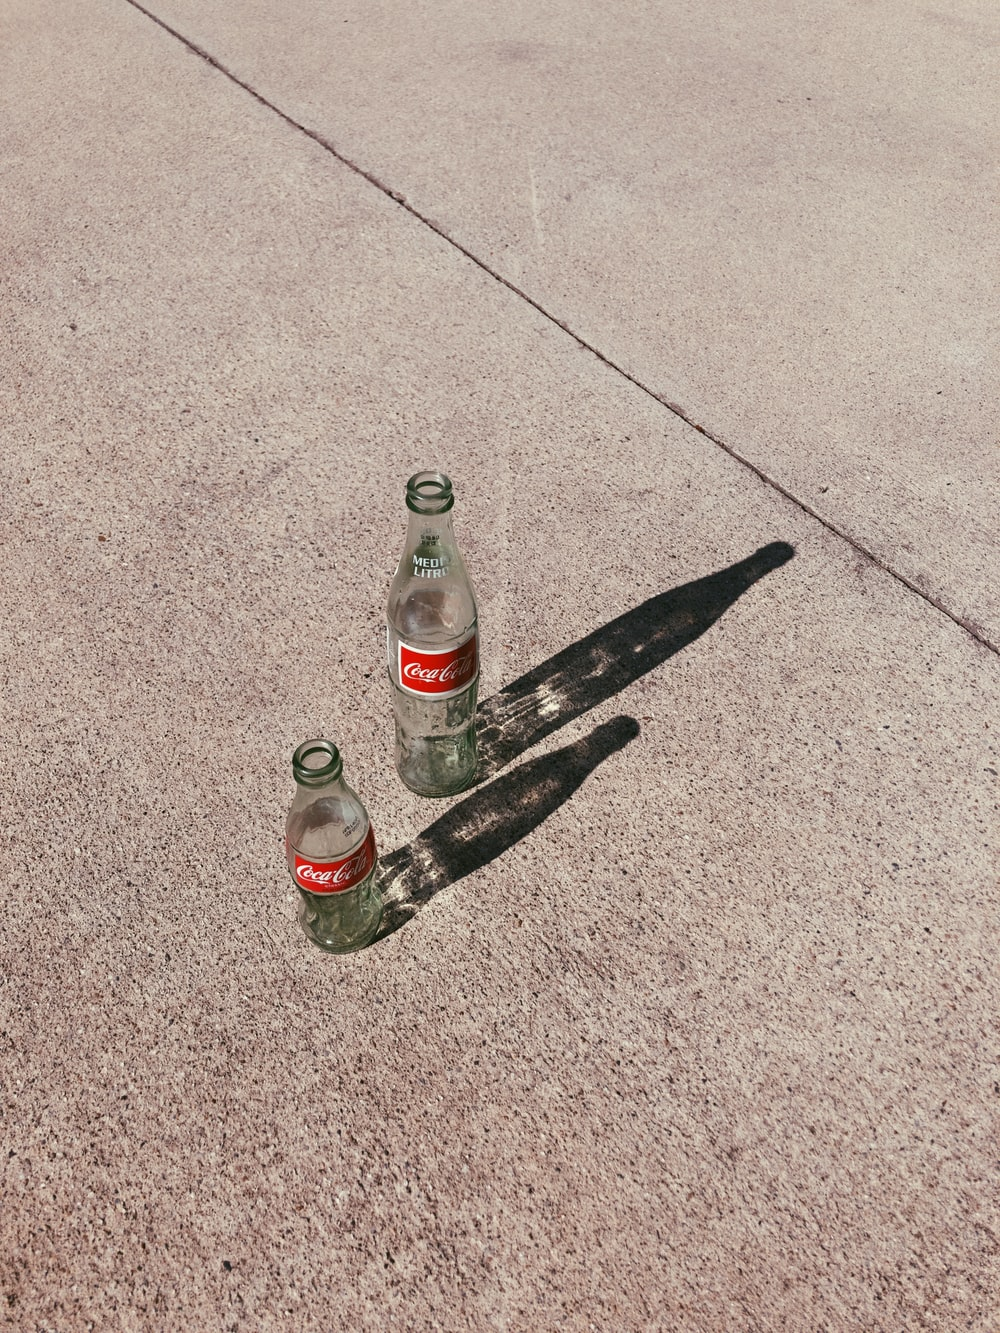 two empty glass bottles on pavement